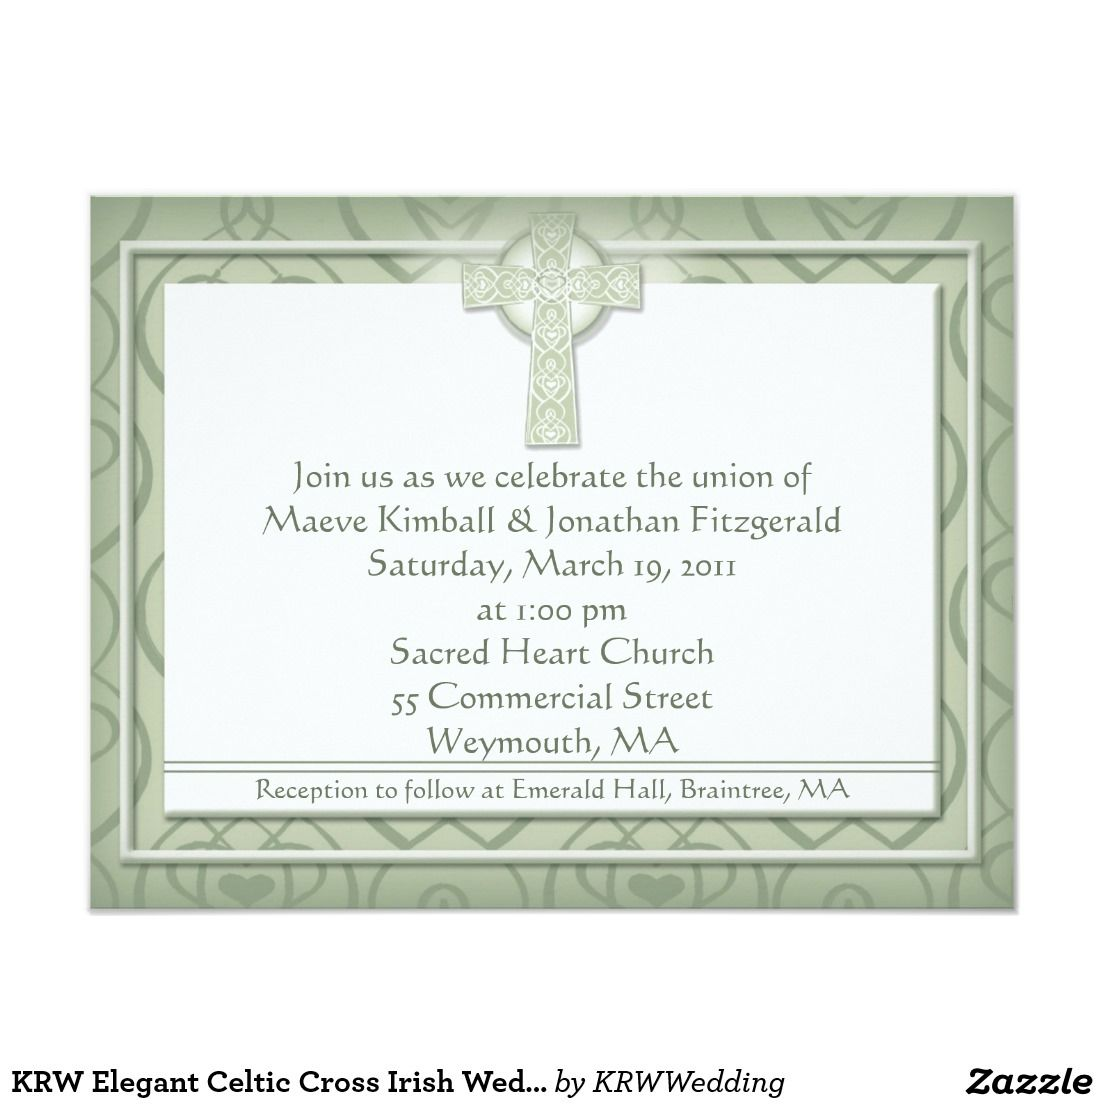 KRW Elegant Celtic Cross Irish Wedding Card | Wedding card, Elegant ...